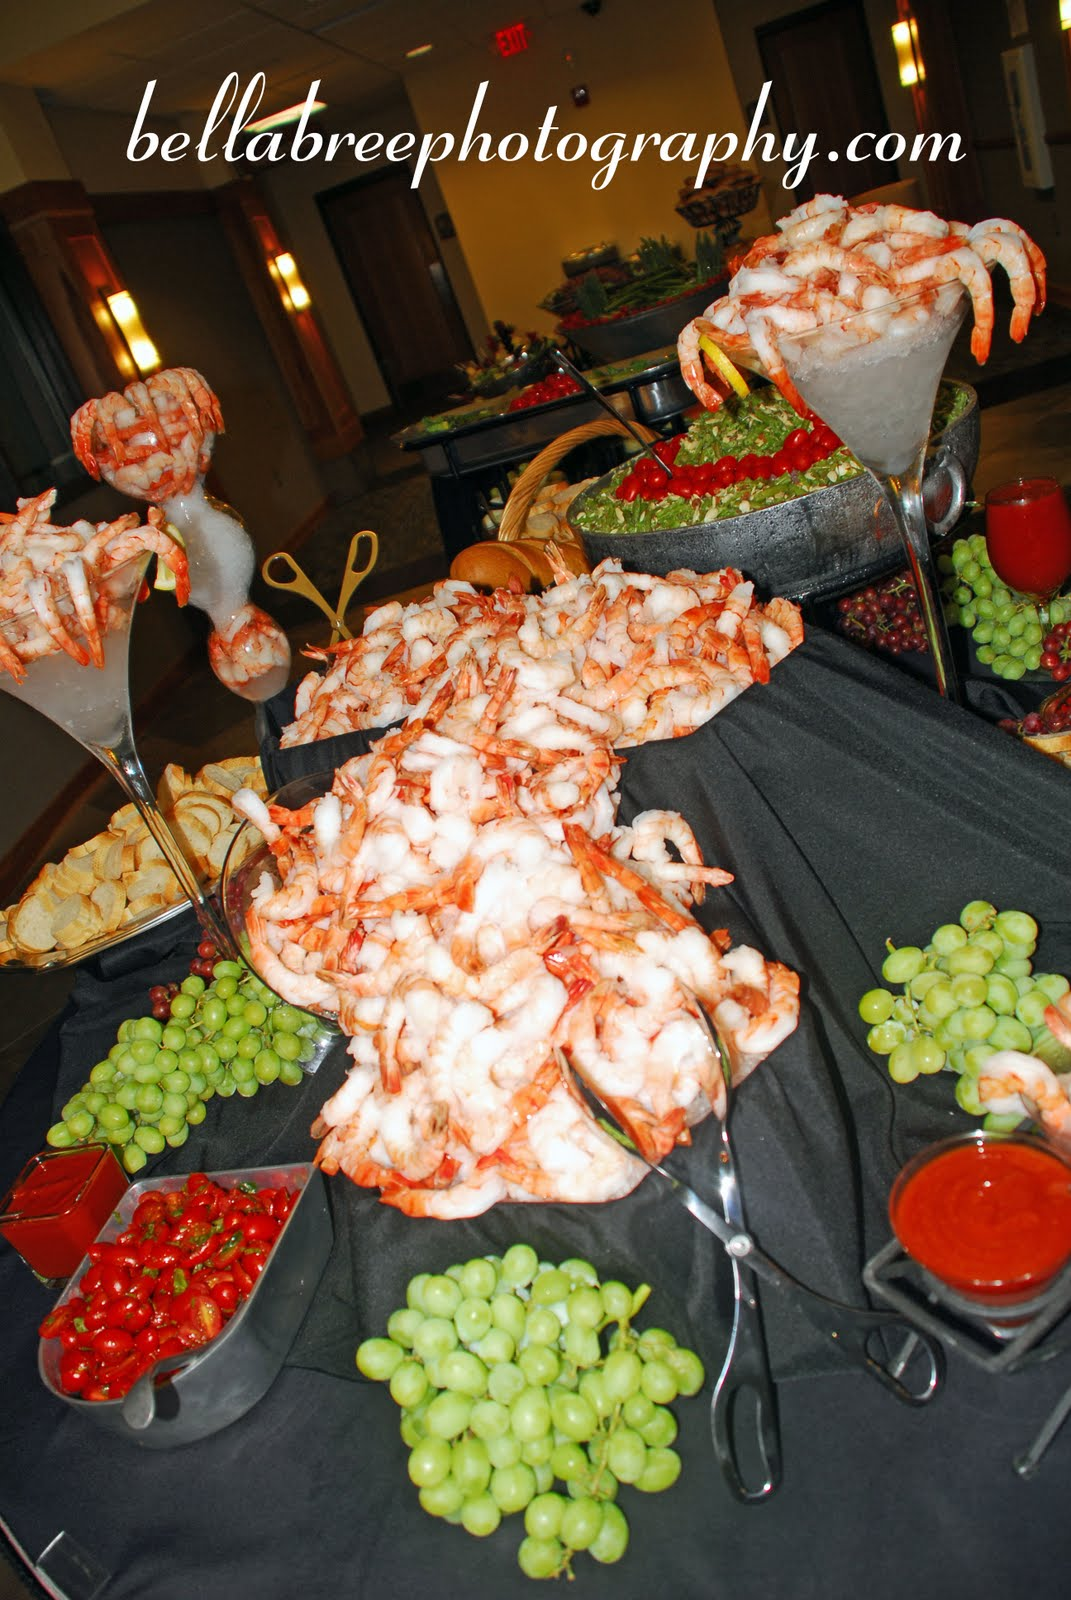 See The Fabulous Food Below I Know You Will Be Hungry After Viewing These Tony Wilkerson 913 710 7370 1383cateringhy Vee